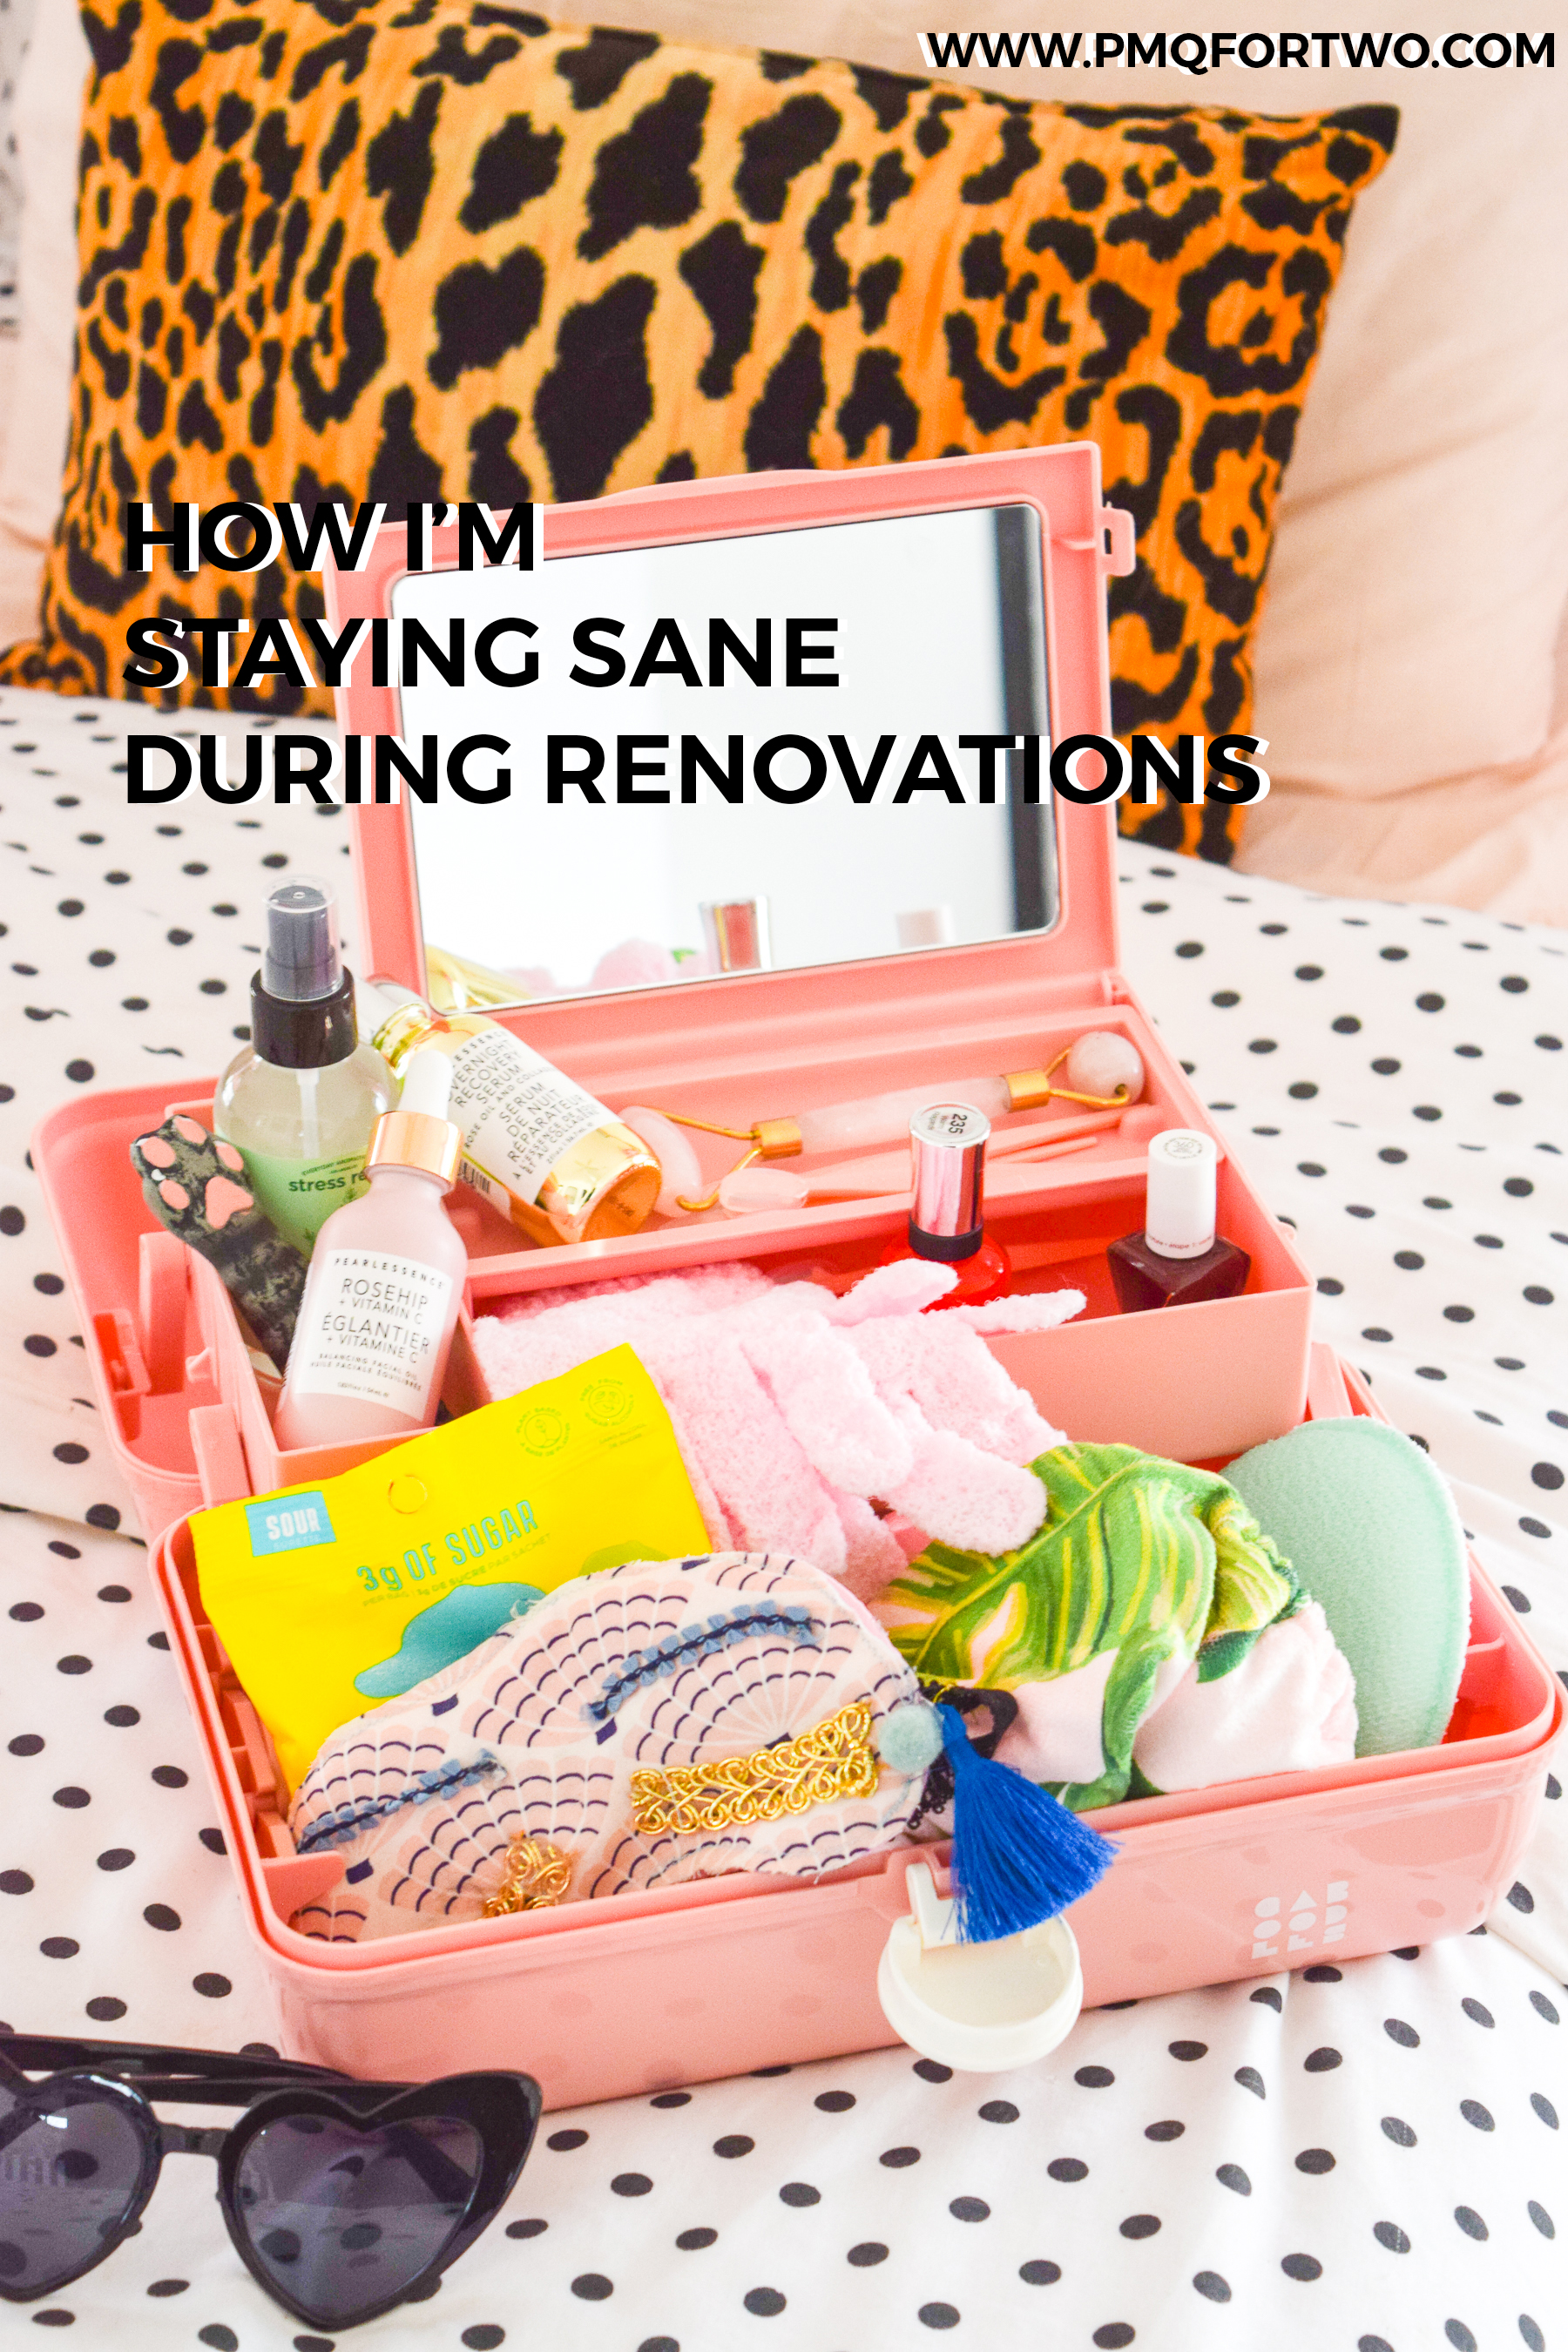 staying sane during renovations is easier said than done, but once you figure out what's working for you, it's easier than you'd think!